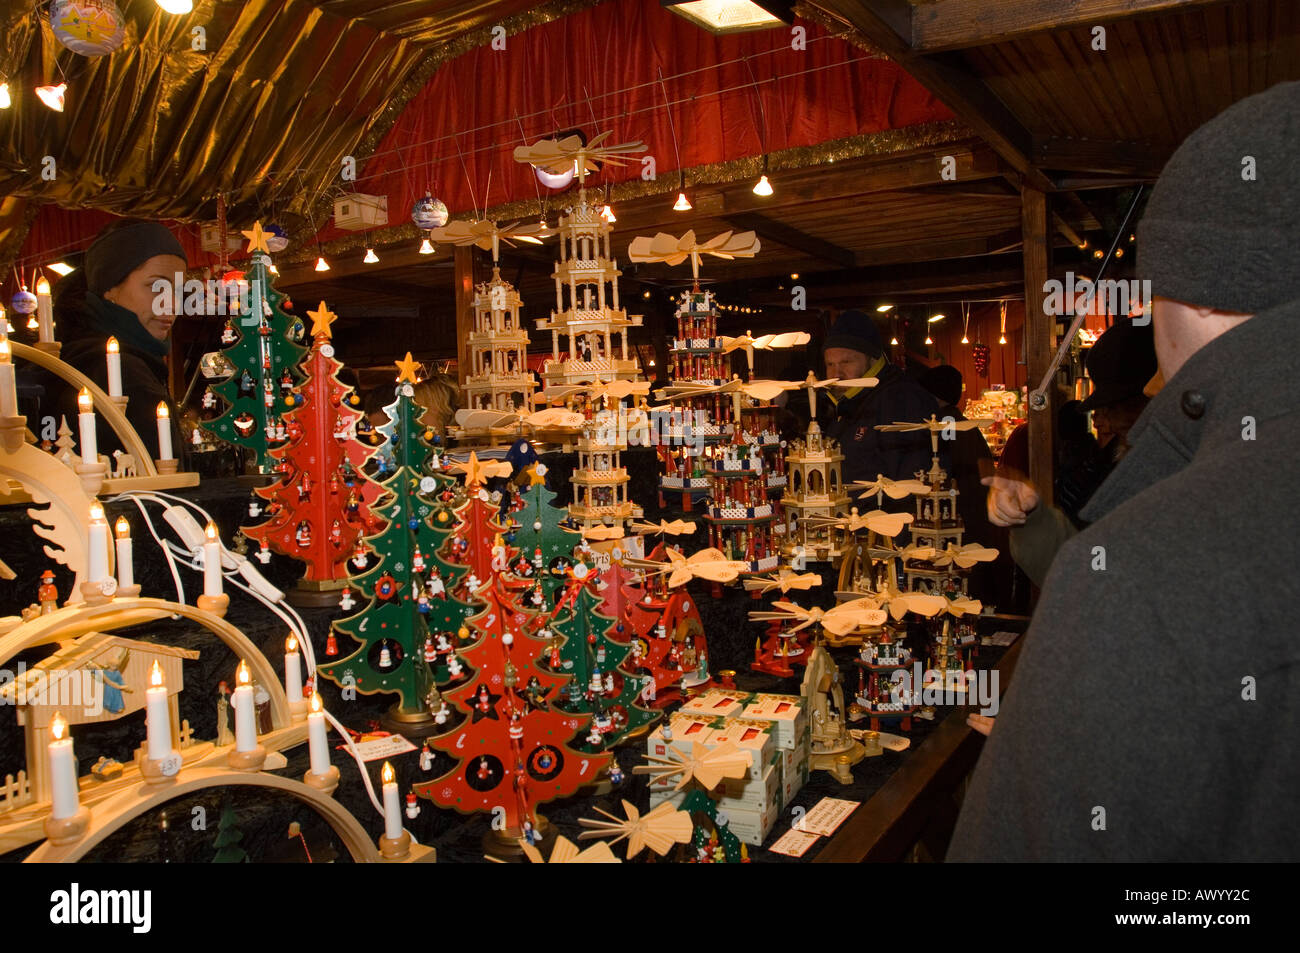 Traditional german christmas decorations - Christmas Decorations At Traditional German Christmas Market Edinburgh